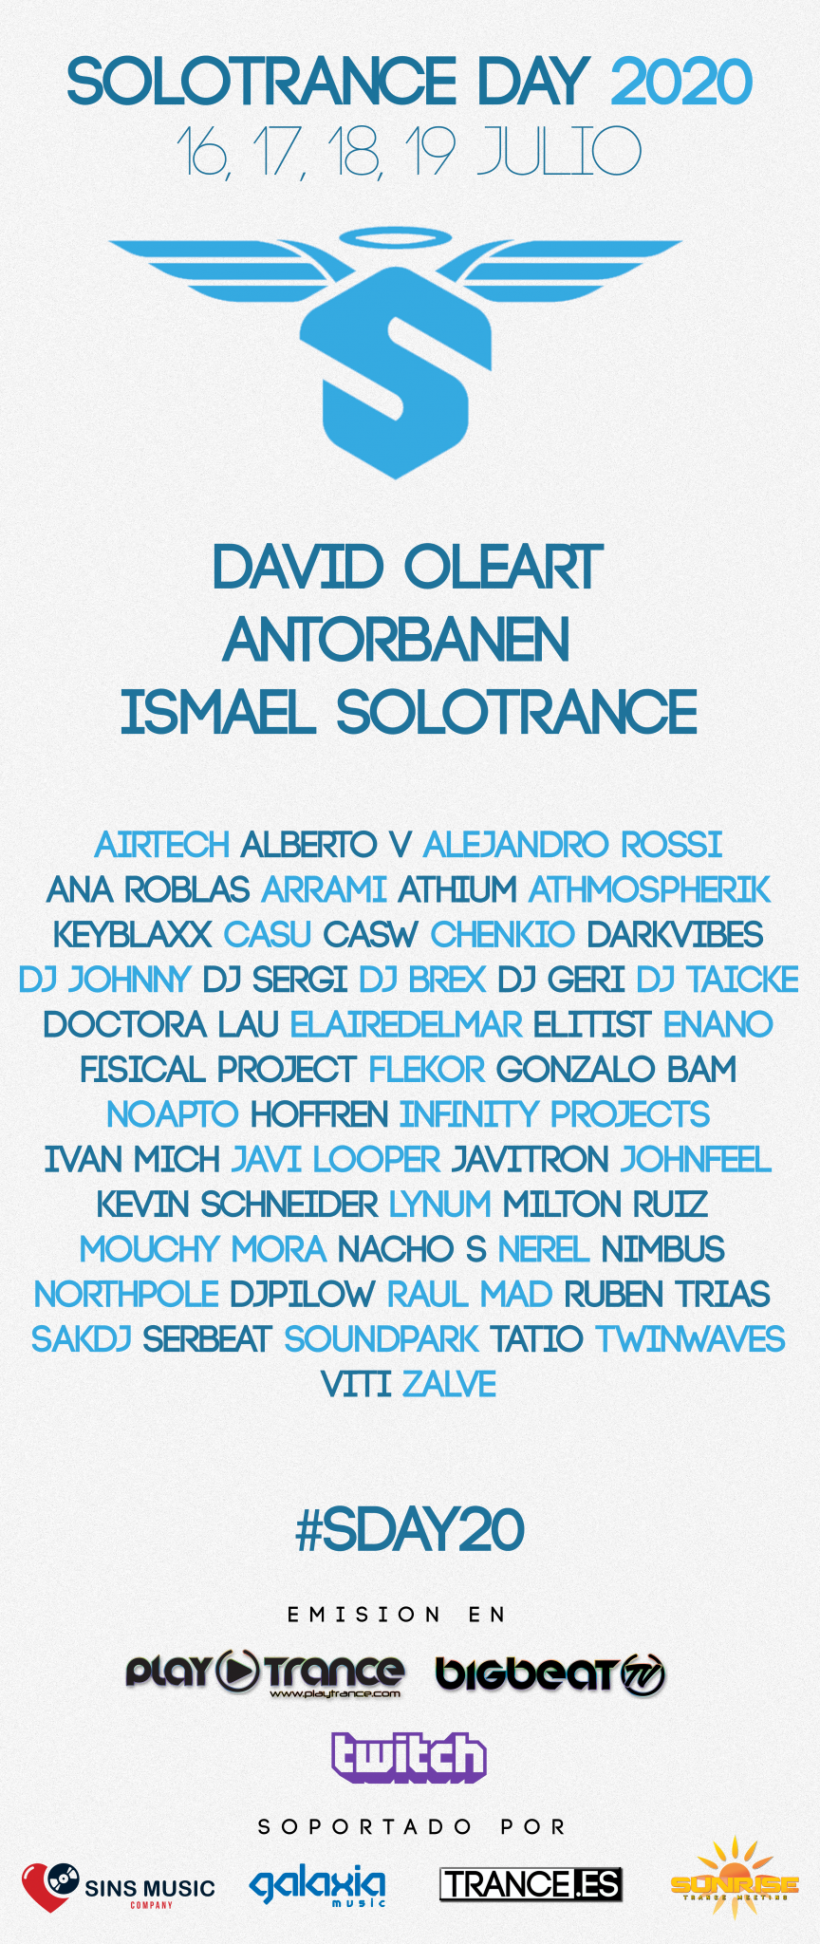 Solotrance Day 2020